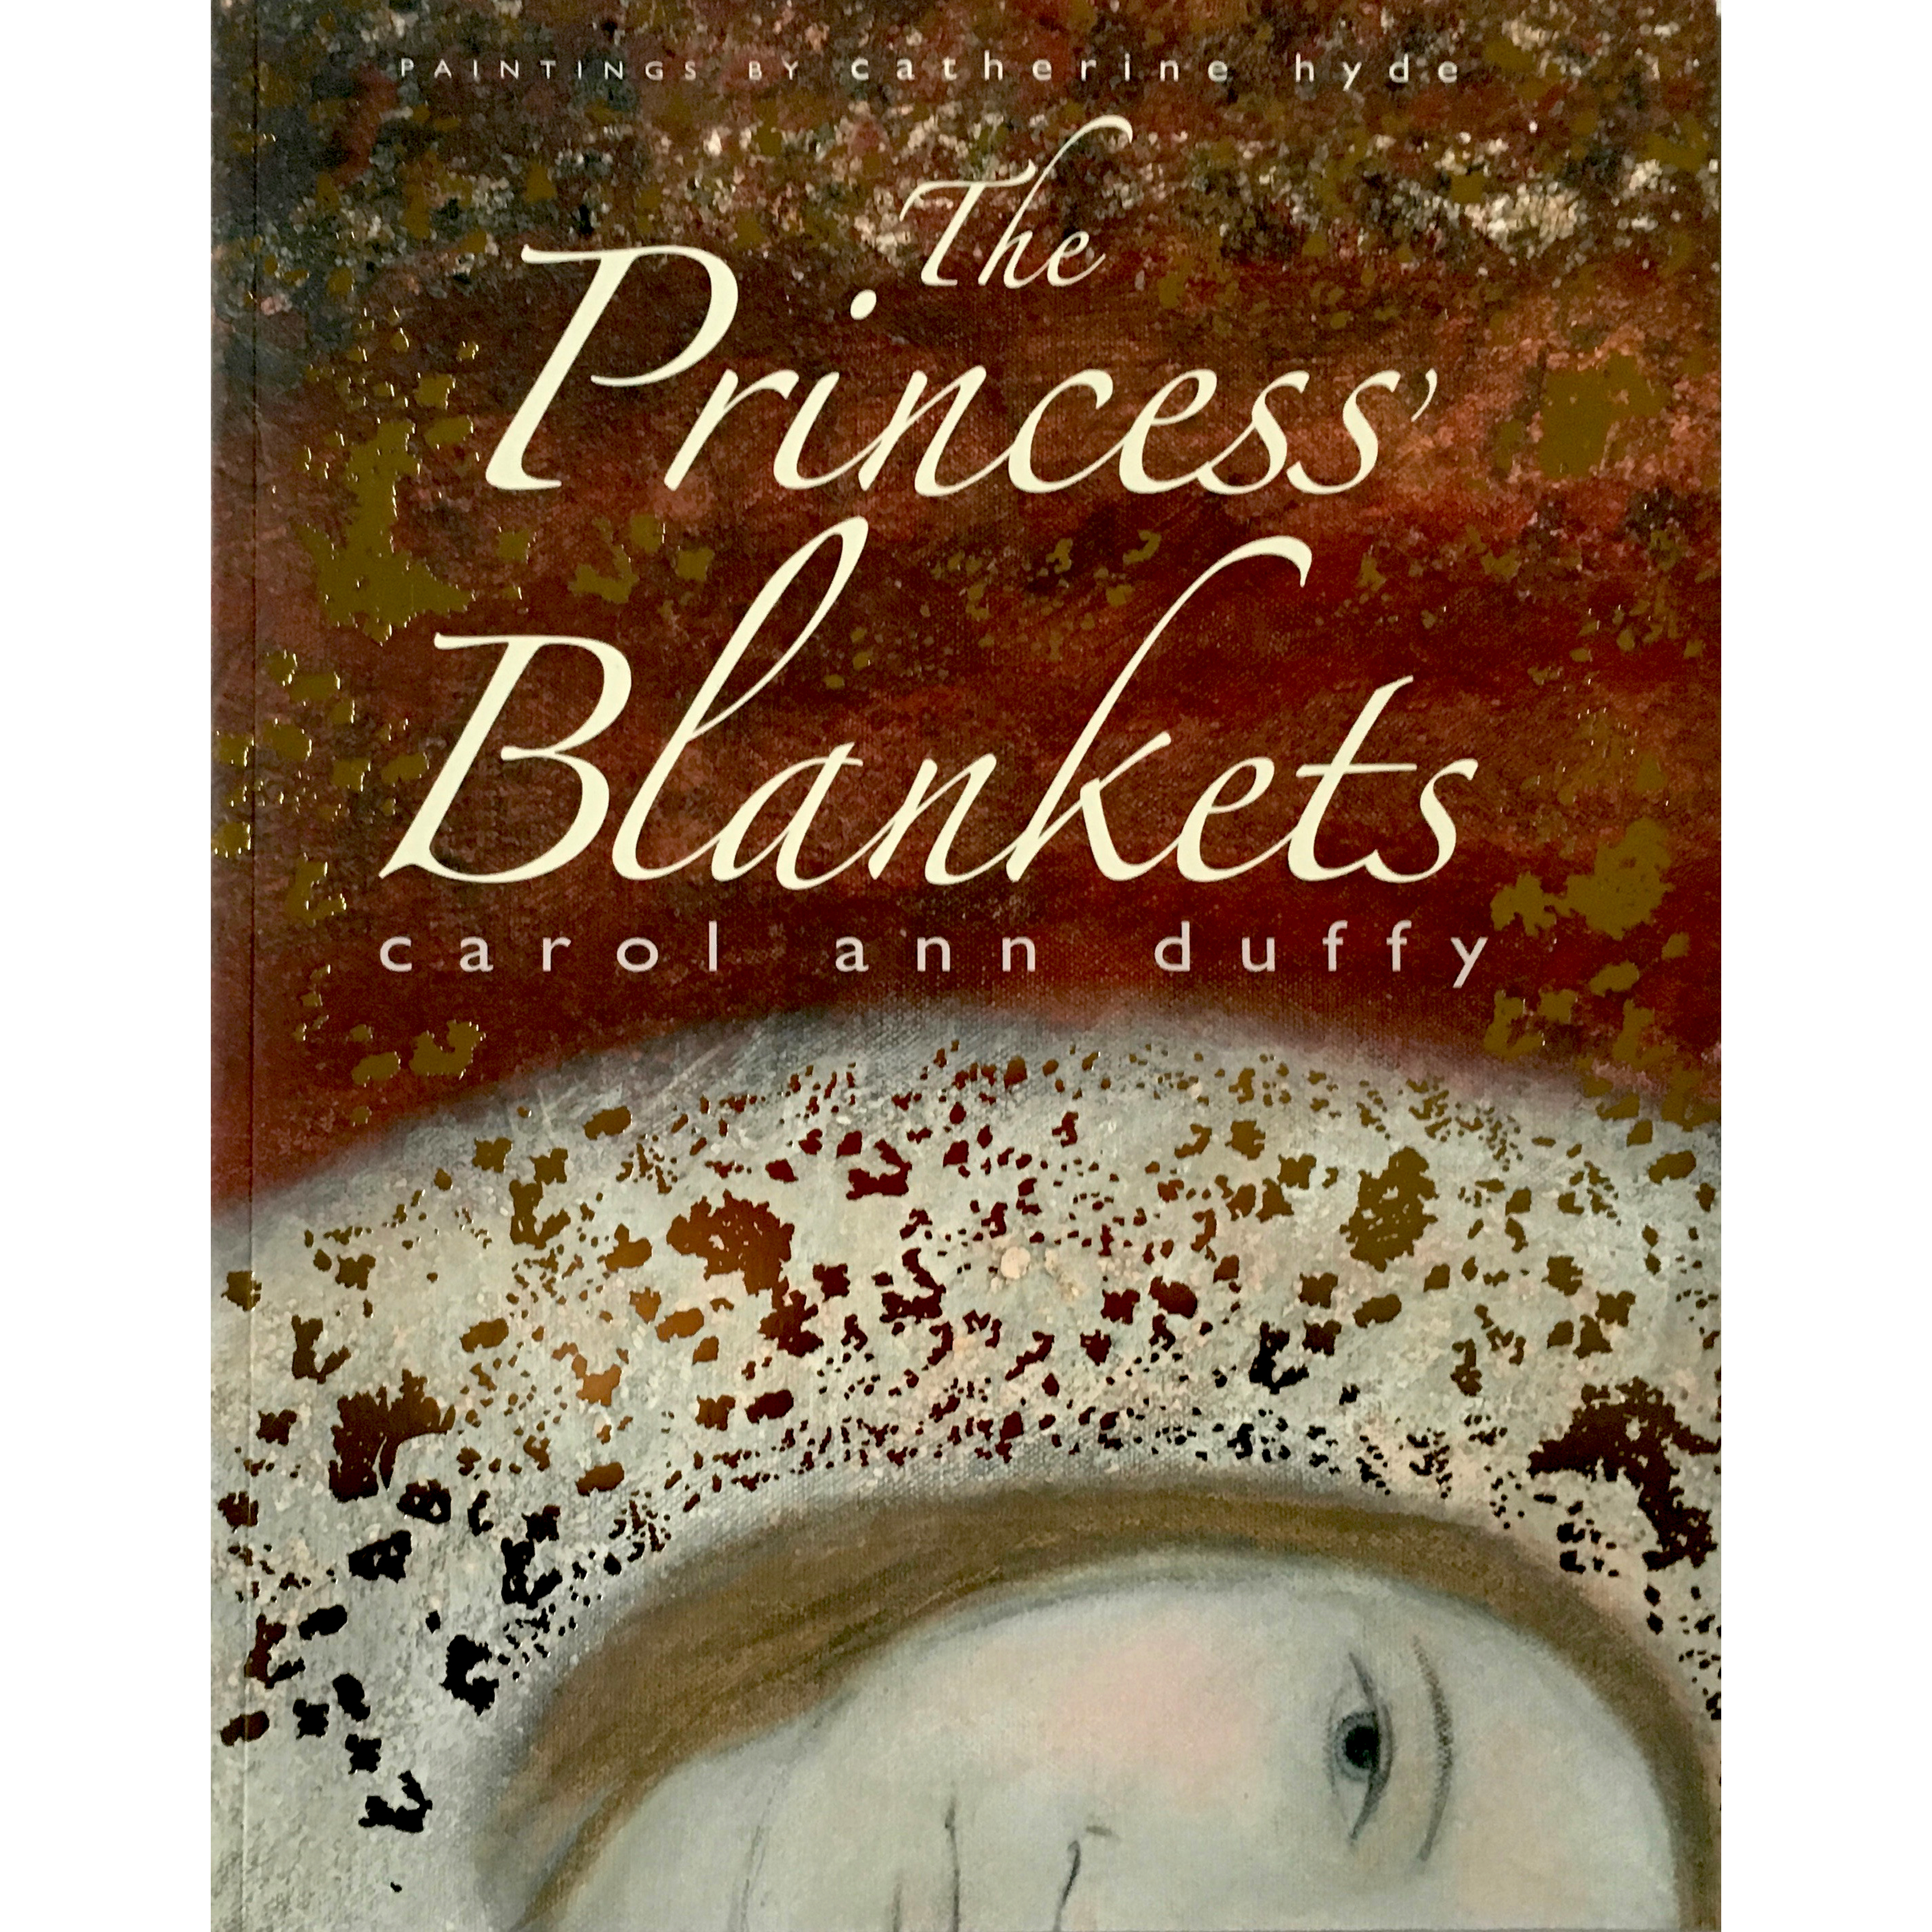 'The Princess' Blankets' book